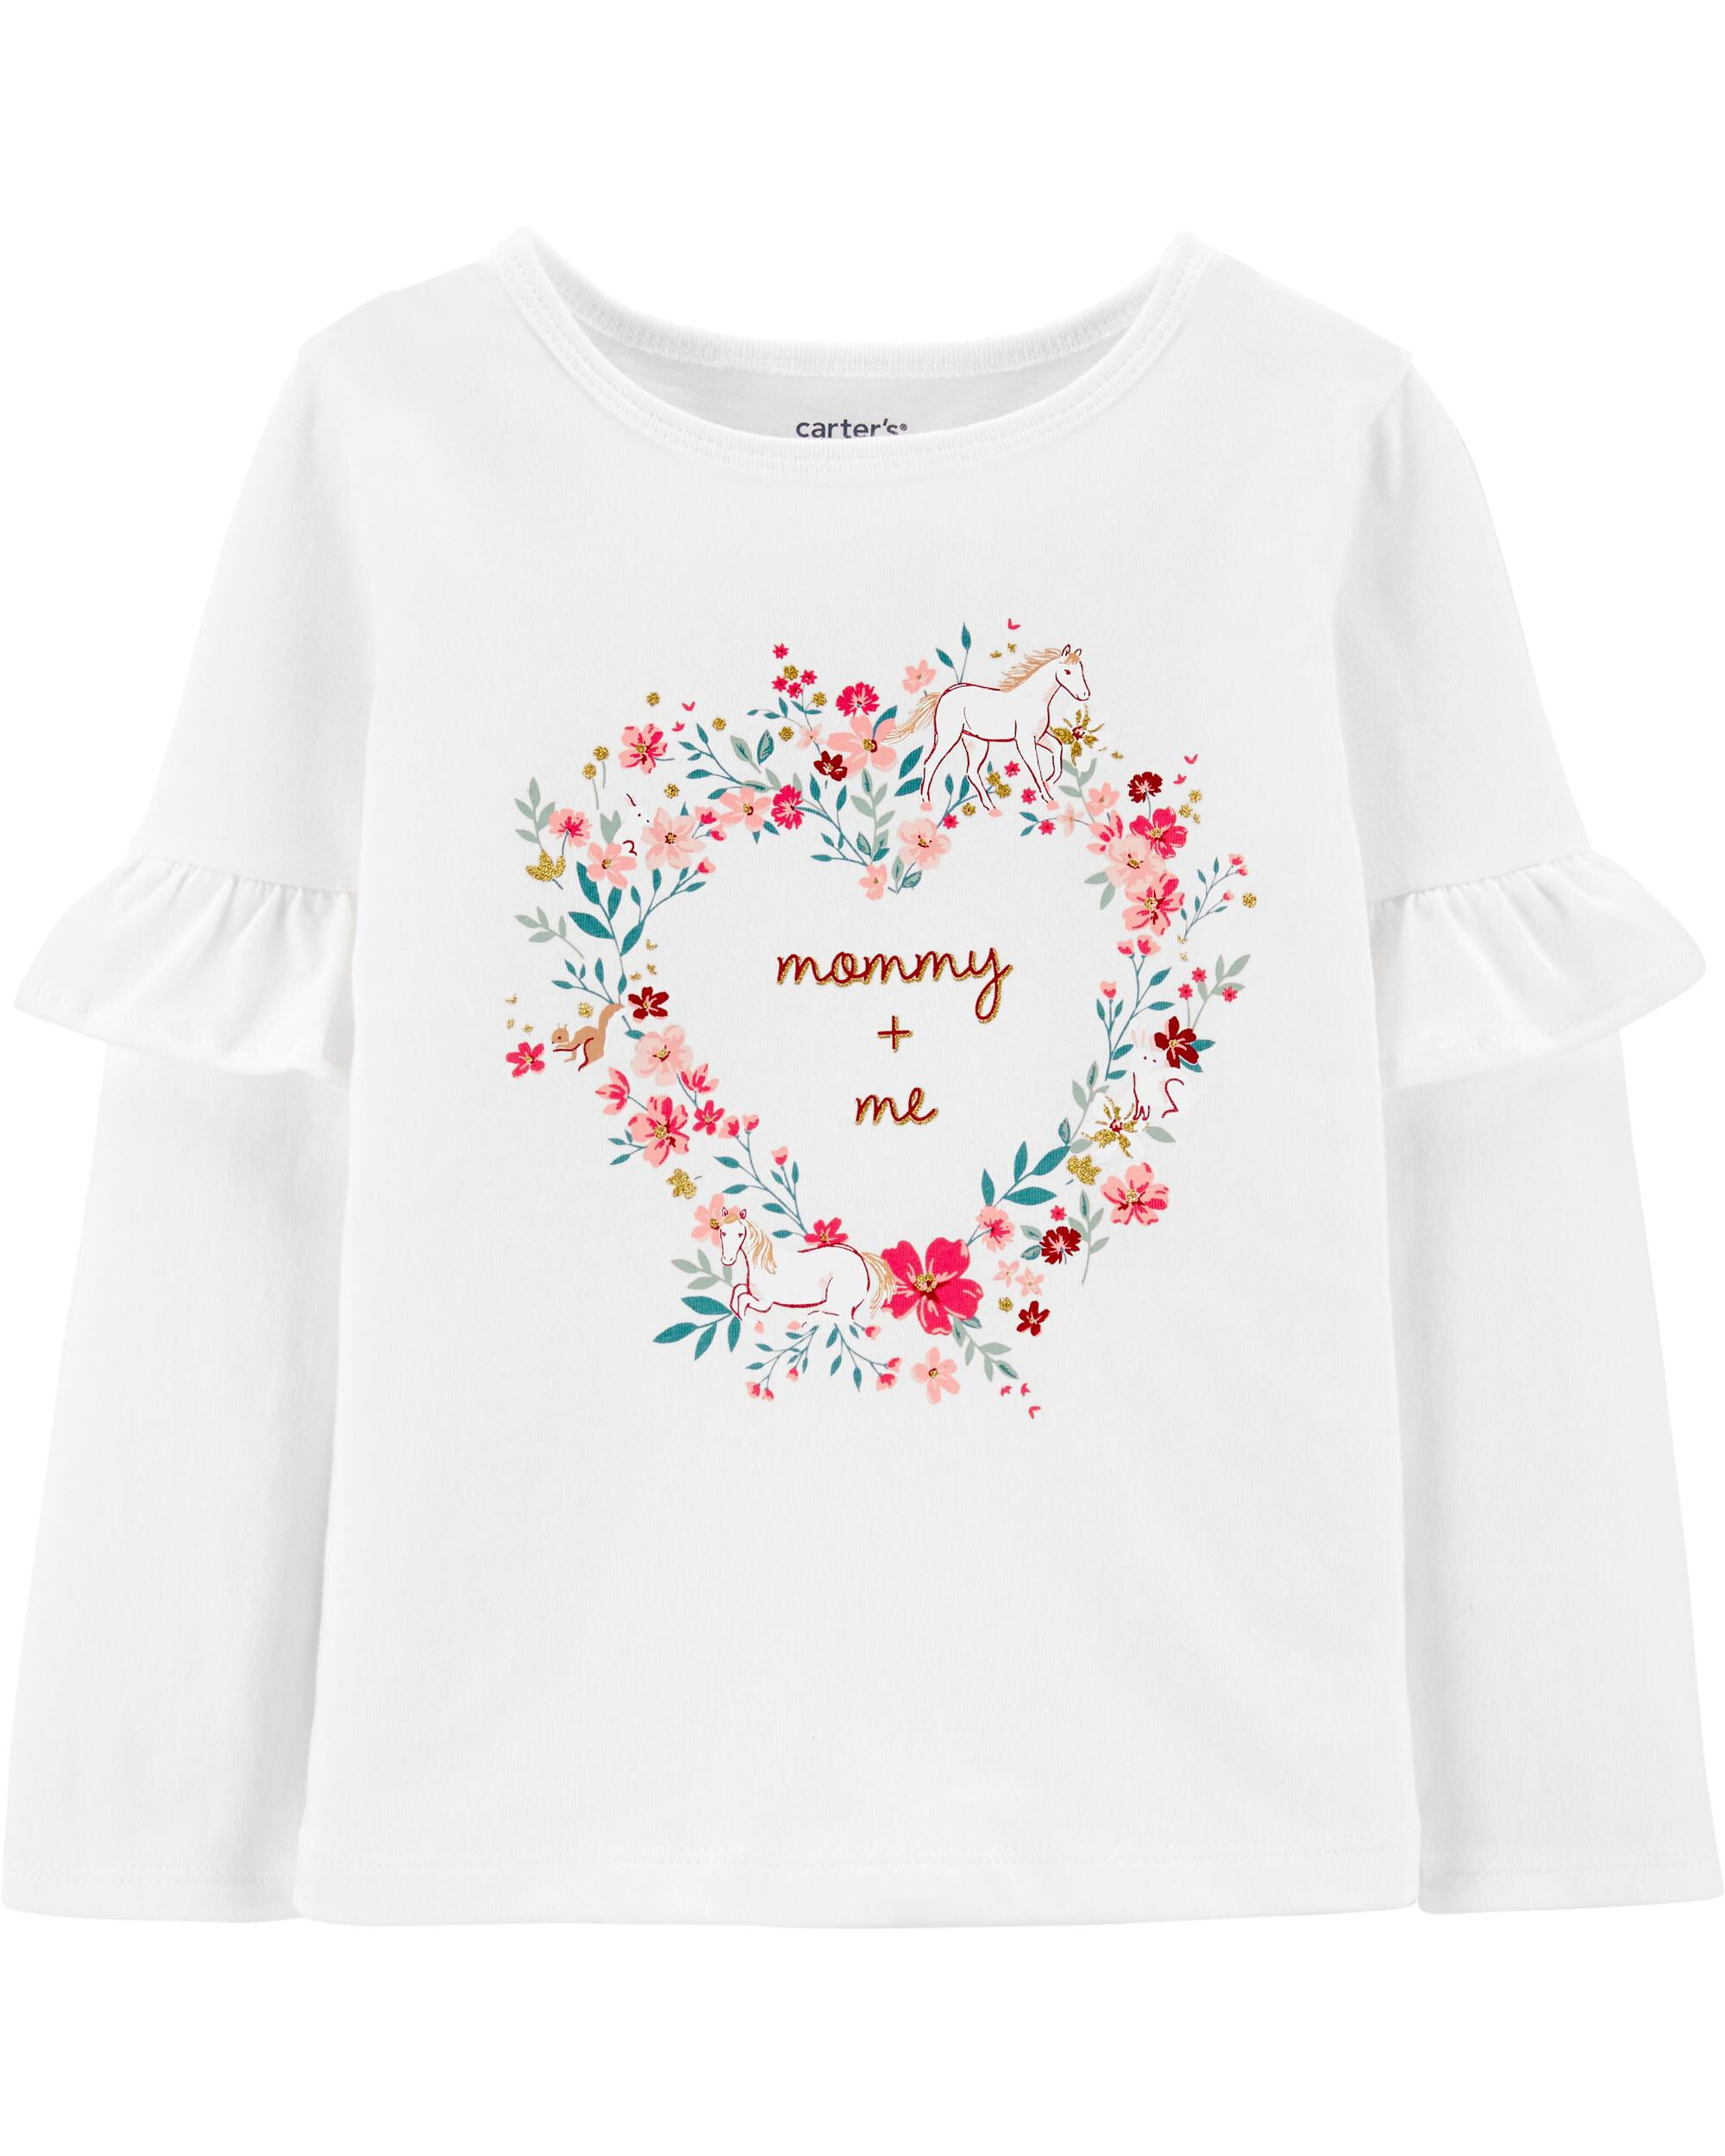 *CLEARANCE* Mommy + Me Floral Jersey Tee